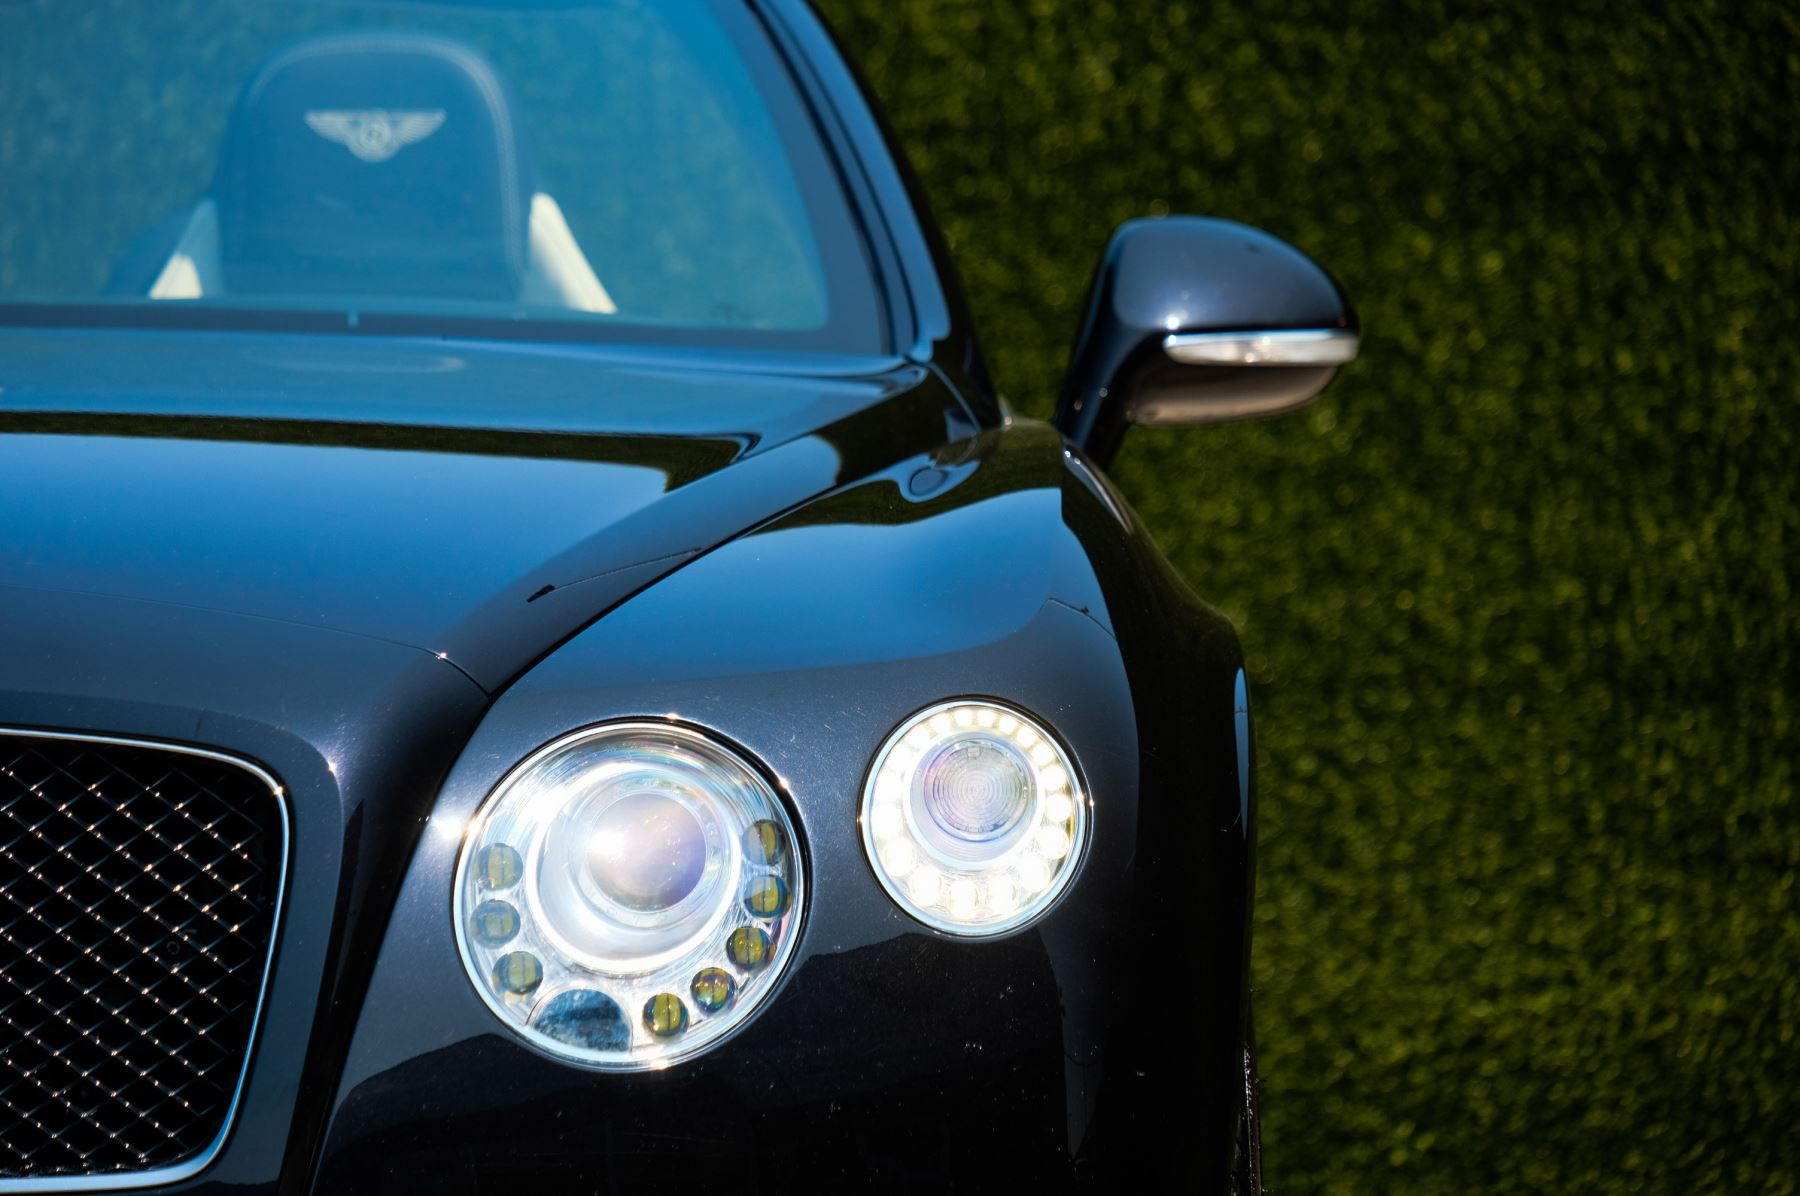 Bentley Continental GTC 4.0 V8 S - Mulliner Driving Specification image 6